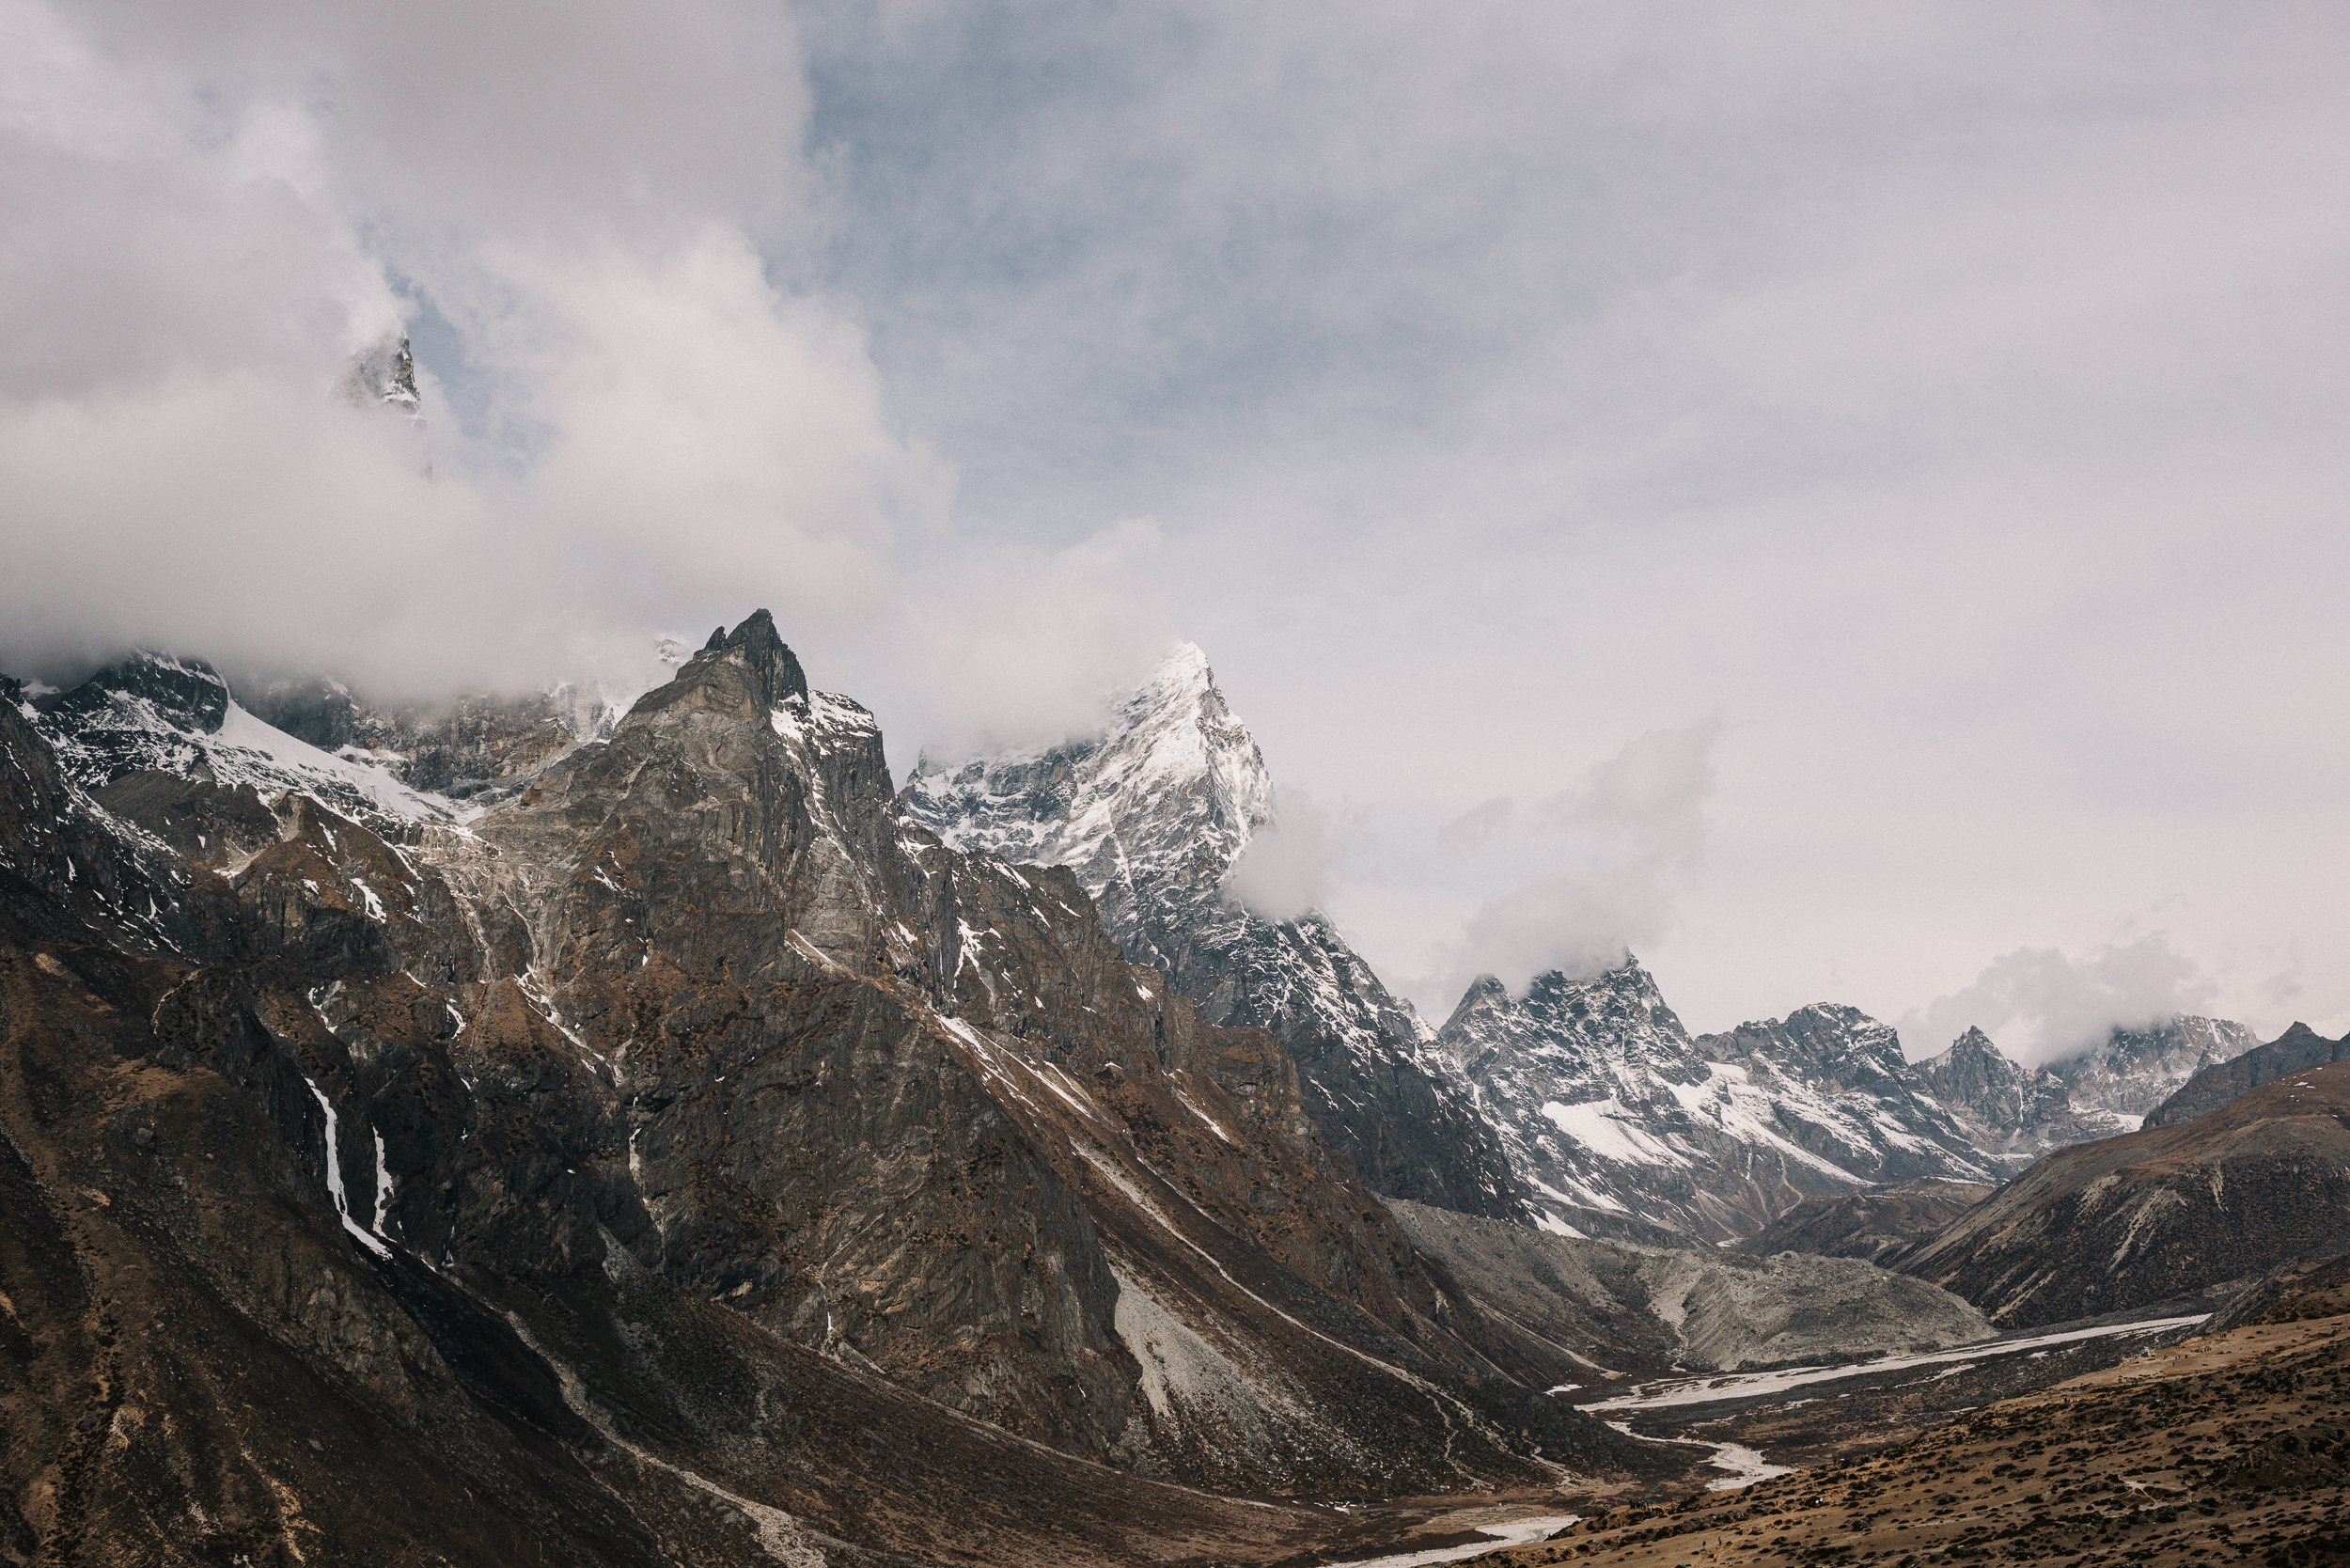 Nepal_EverestBaseCamp_2019_TaraShupe_Photography_DSC_3985.jpg